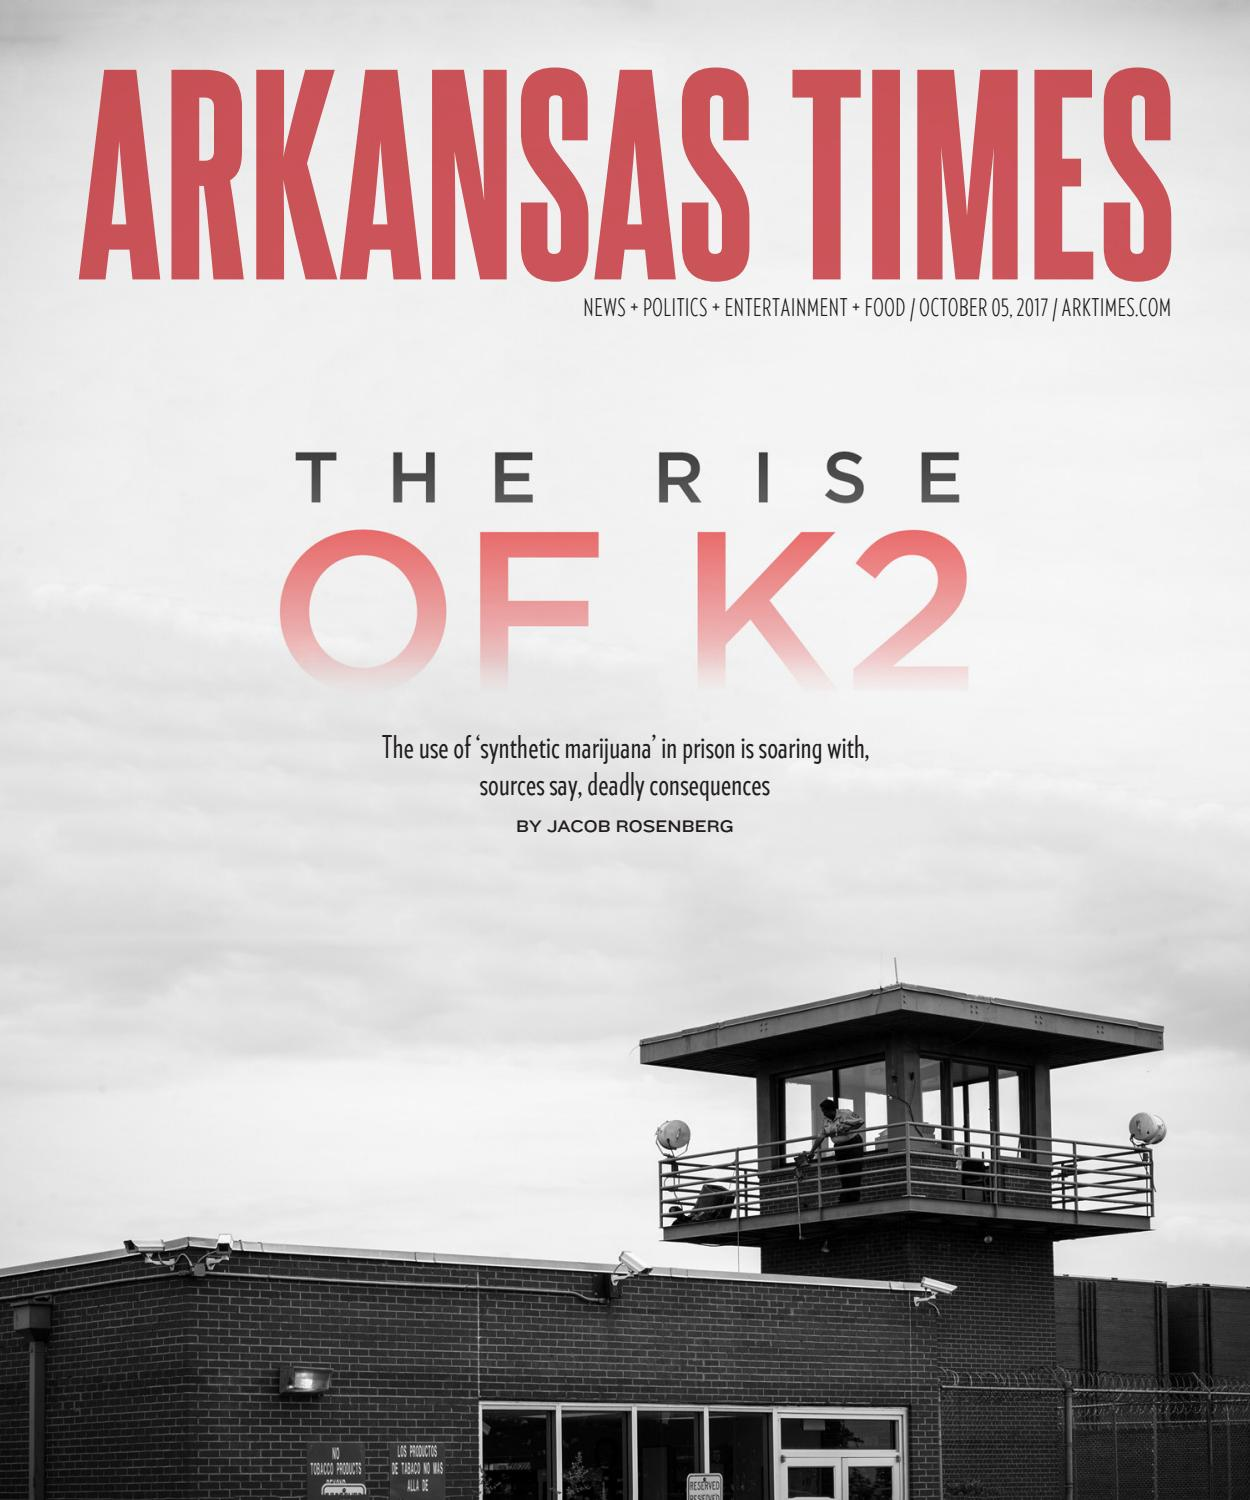 arkansas times october 05 2017 by arkansas times issuu